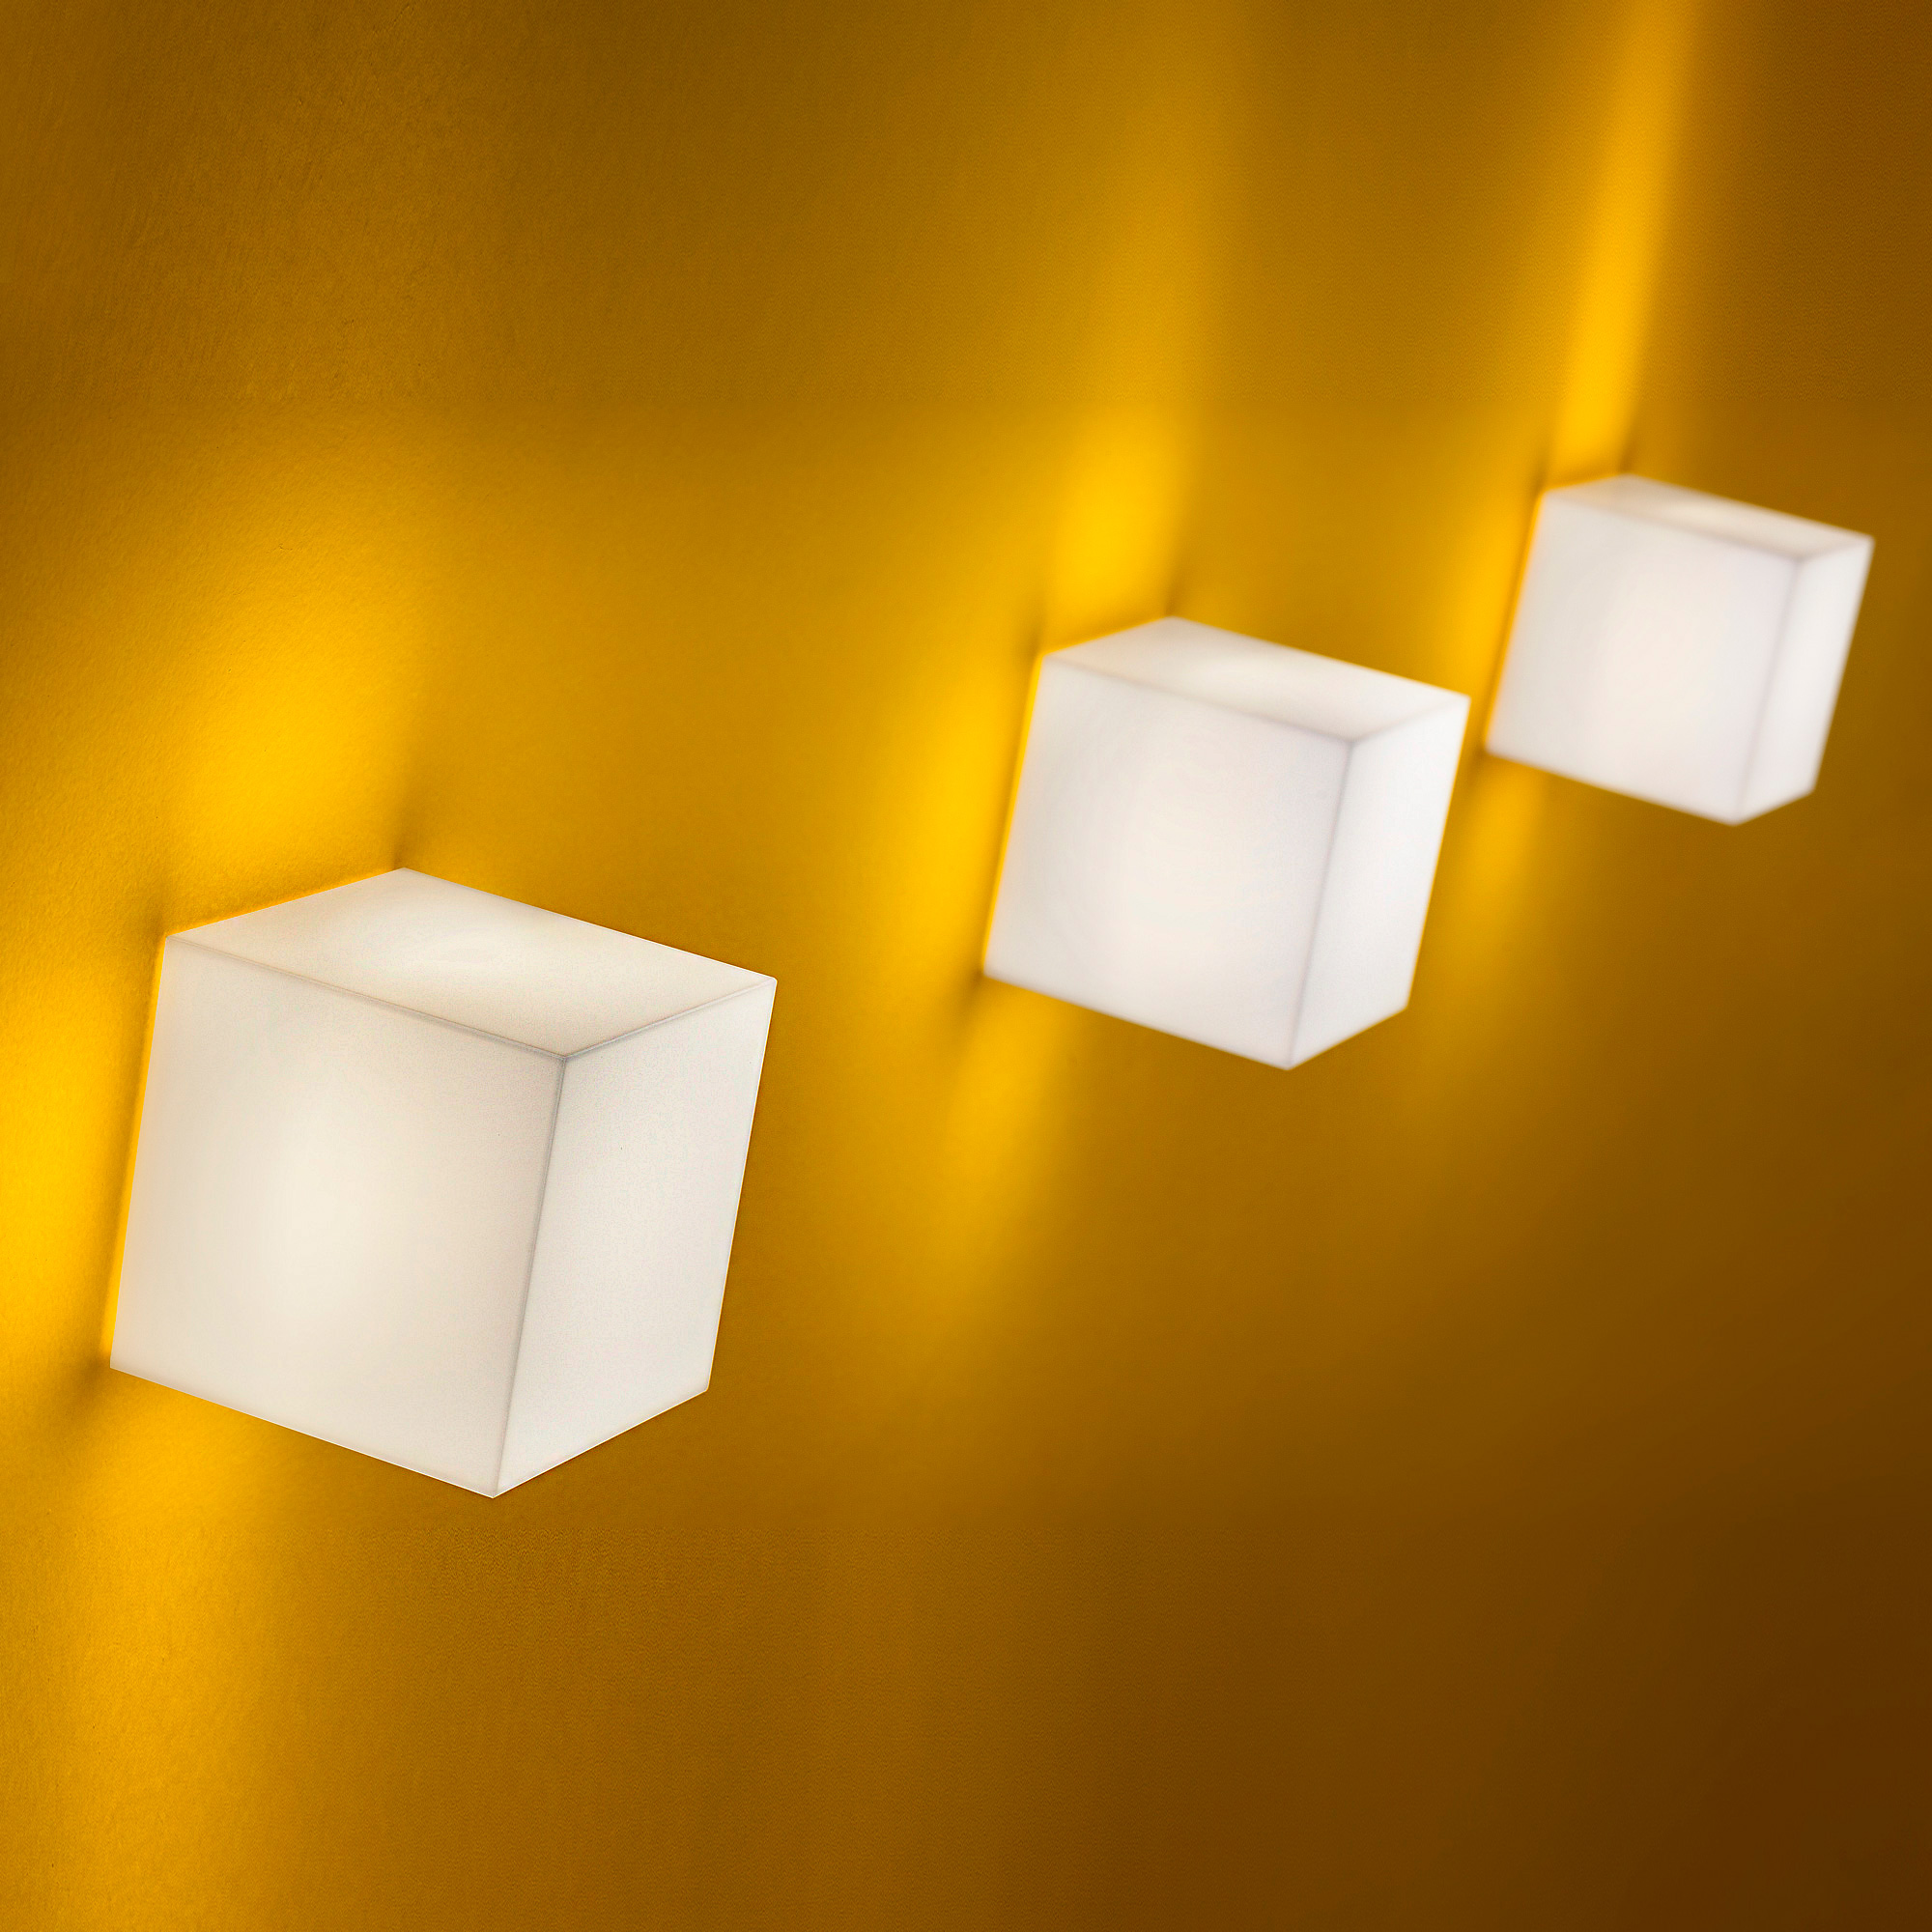 Modern High-End Italian Designer Beetle Mini Cube Wall Lamp - Designer & Luxury Lighting at Cassoni